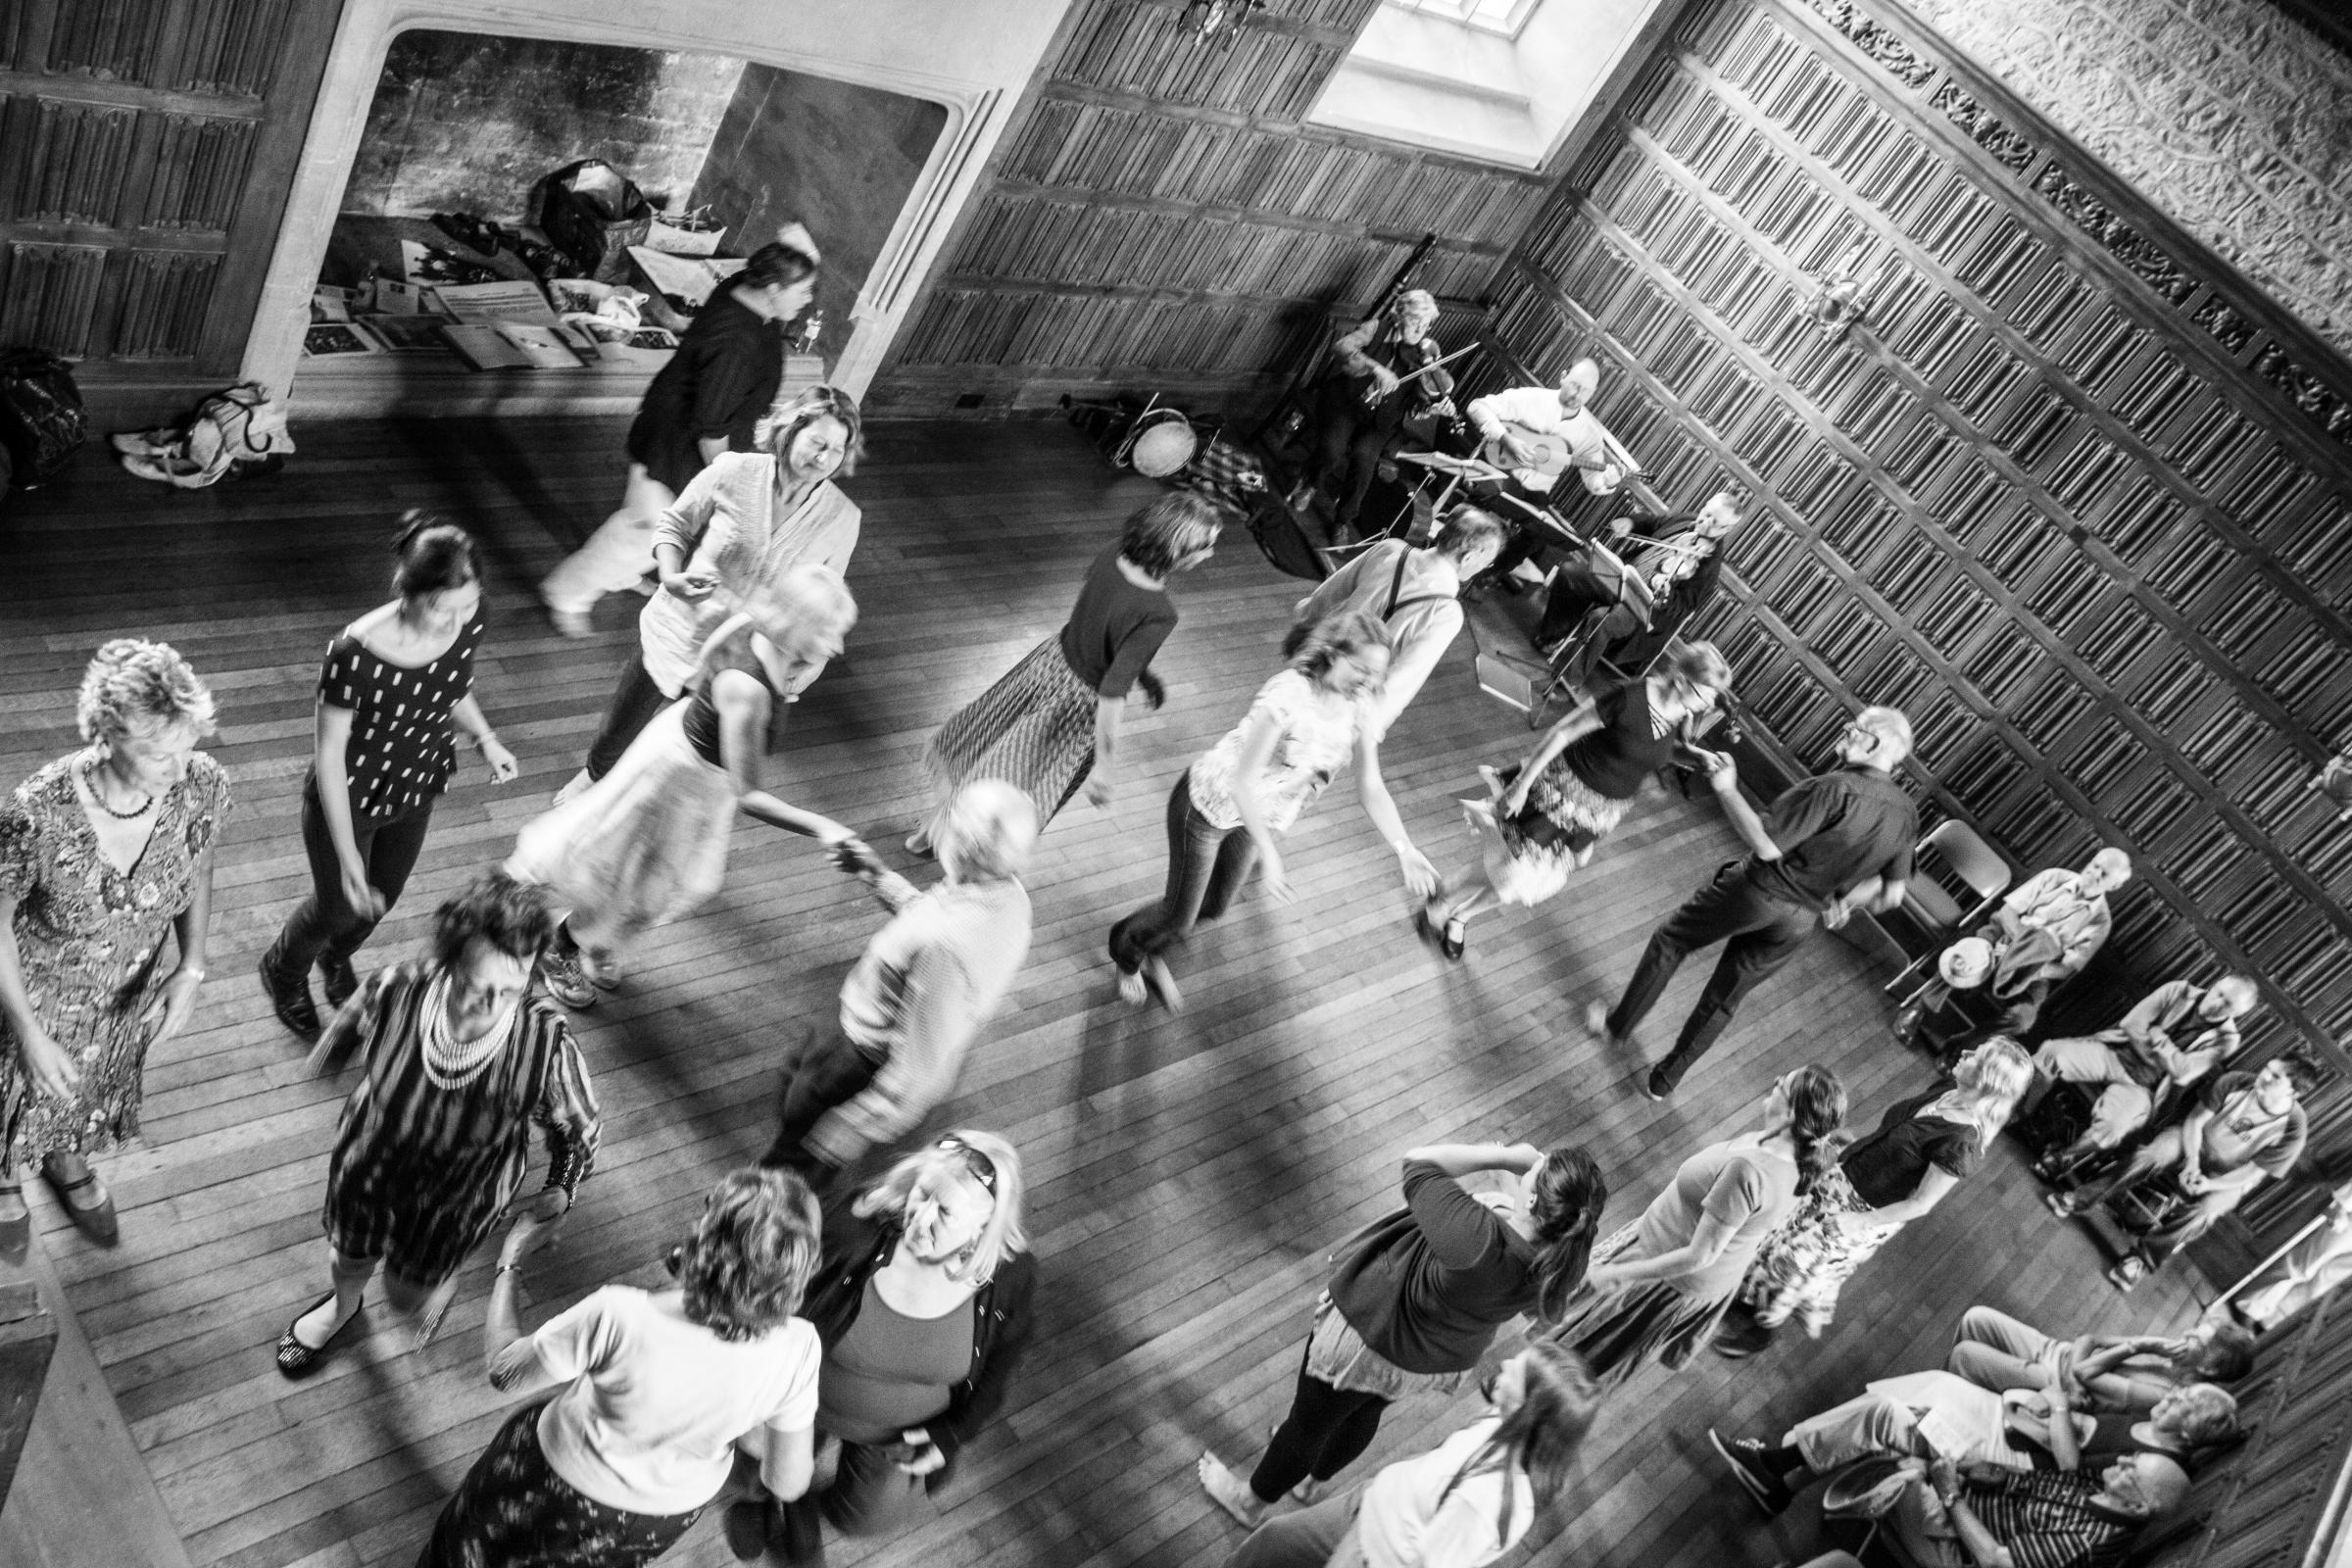 Historical music and dance workshops